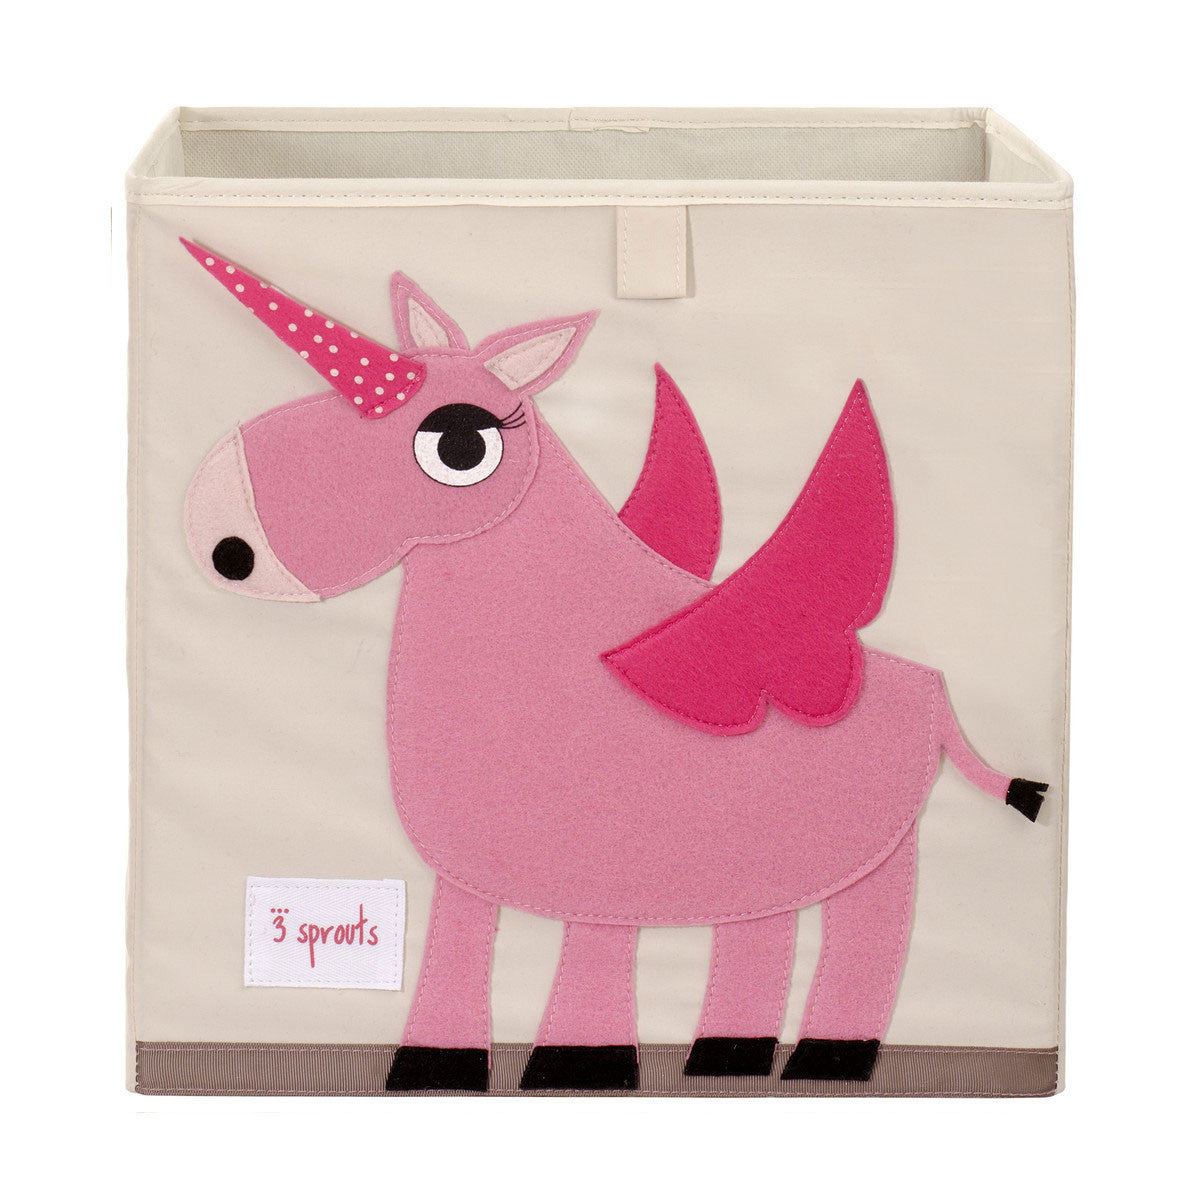 3 Sprouts Storage Box Pink Unicorn - DarlingBaby